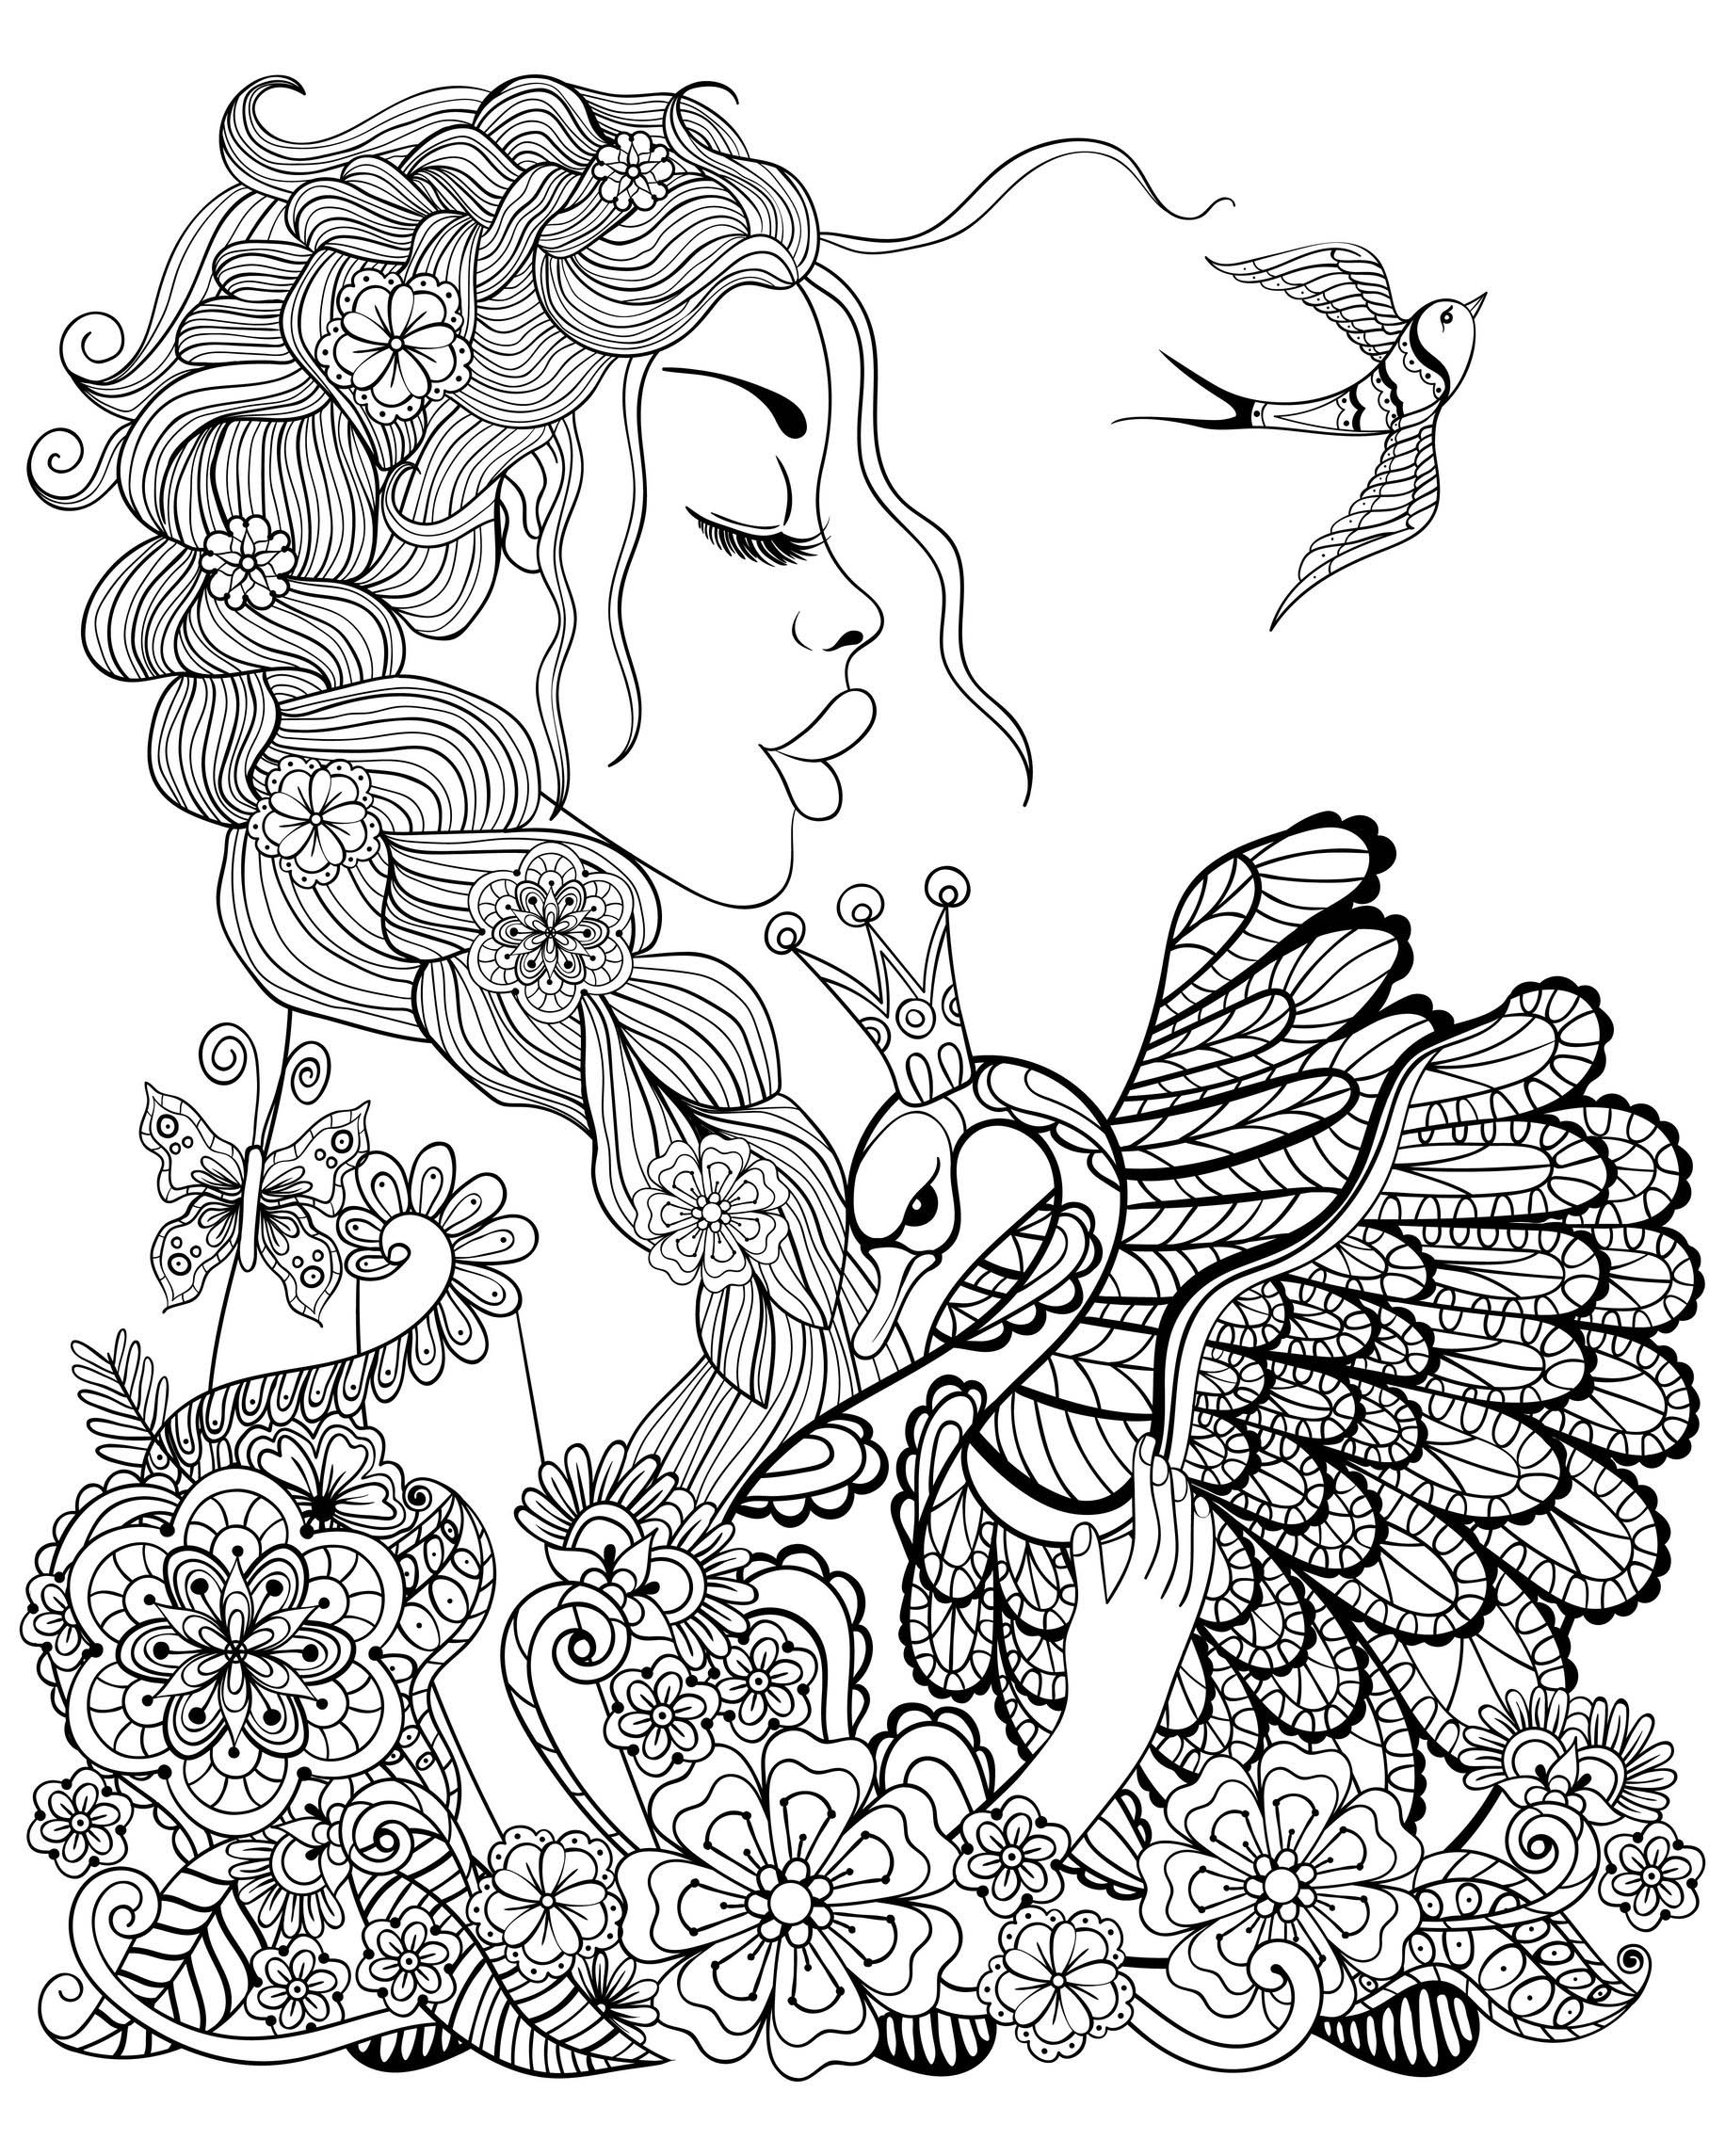 coloring bird for kids bluebird coloring page art starts for kids kids bird for coloring